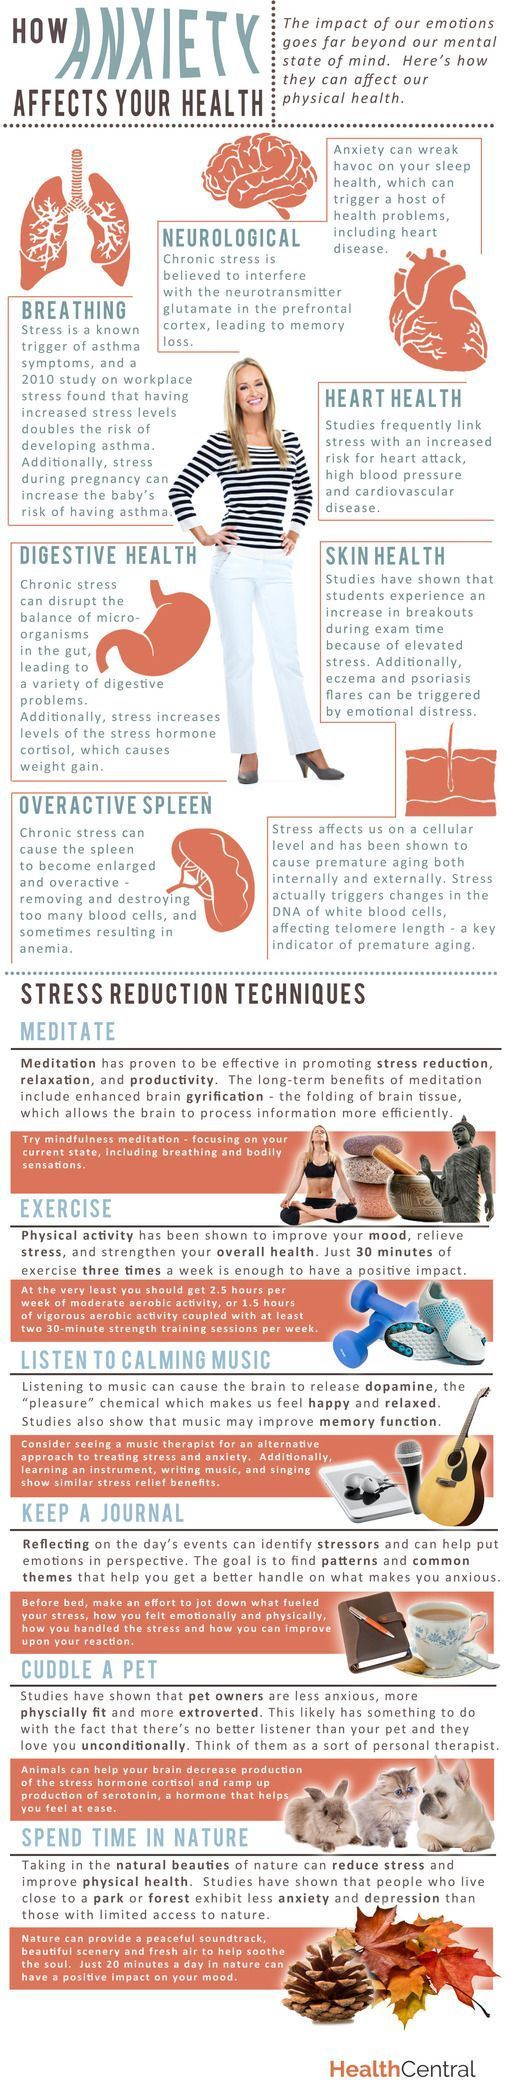 This is how anxiety is affecting your health. It's so important to reduce the stress in our lives.